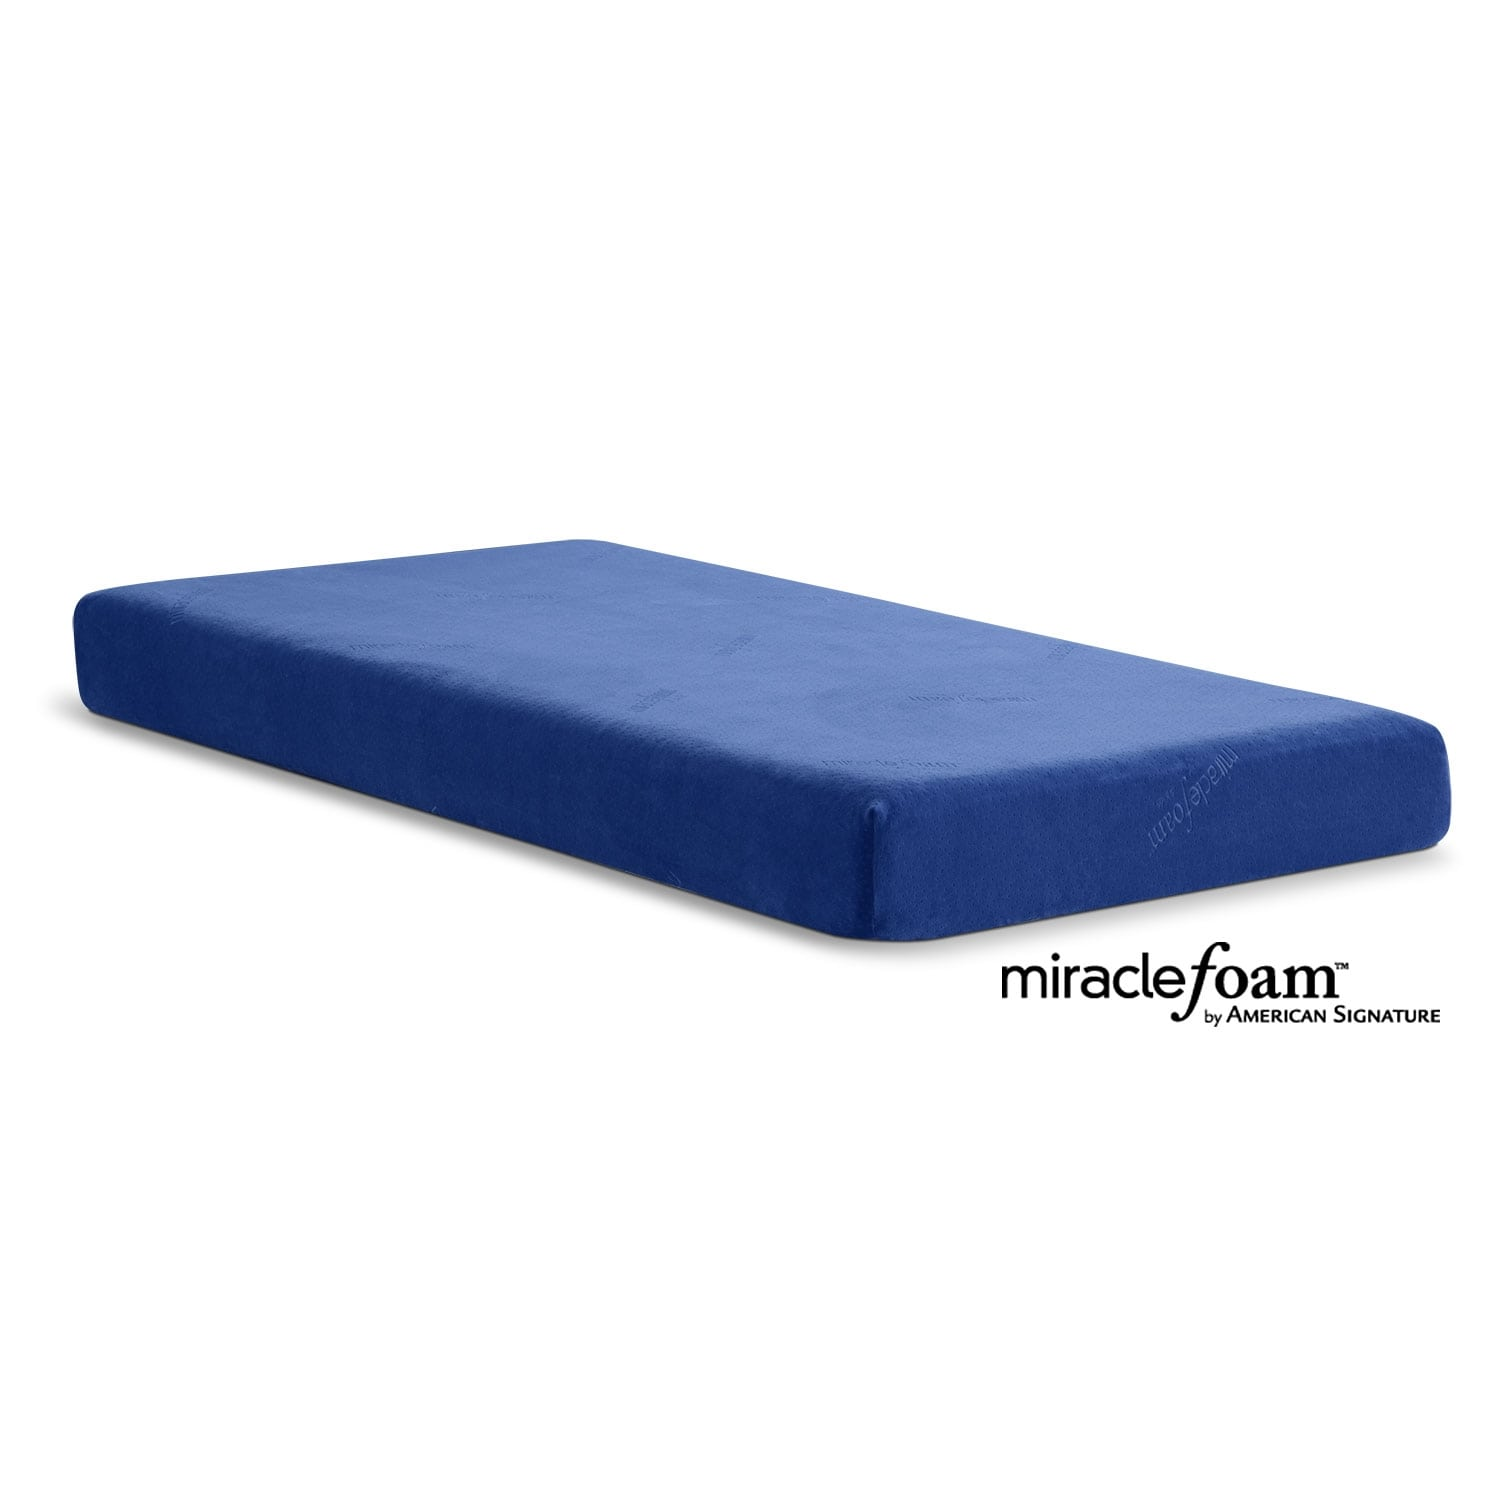 Mattresses and Bedding - Renew Blue Twin Mattress w/ Cover